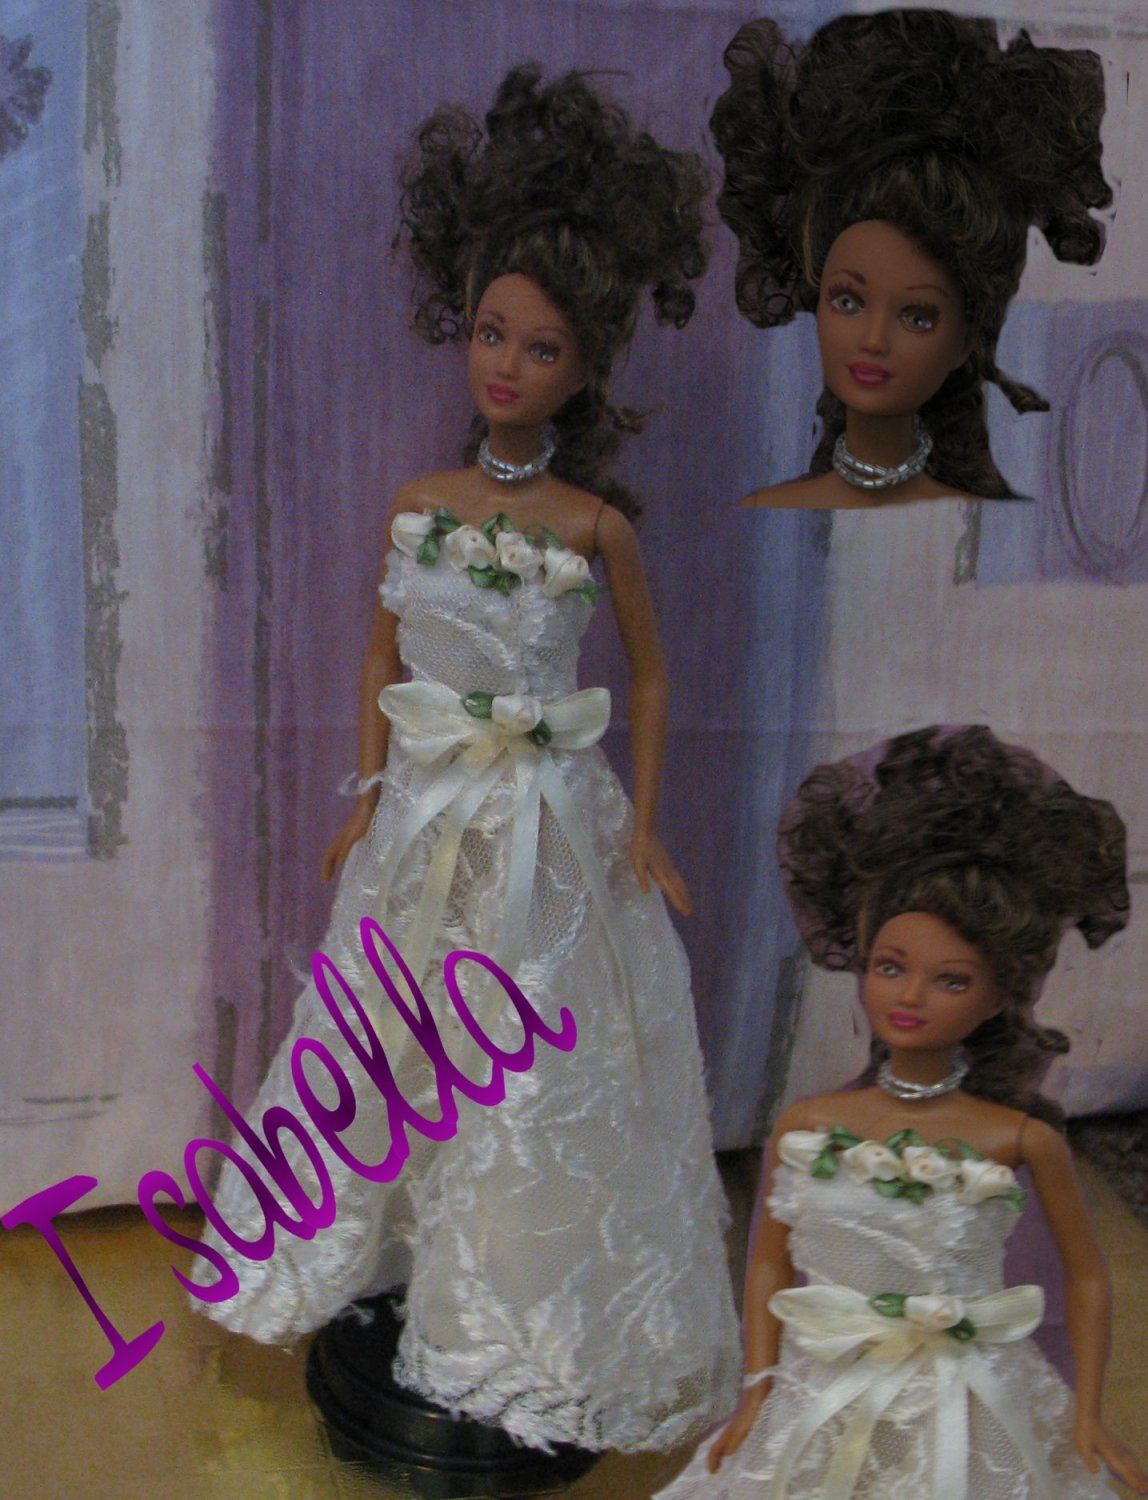 Isabella-OOAK wedding fashion doll formerly known as Kayla Barbie